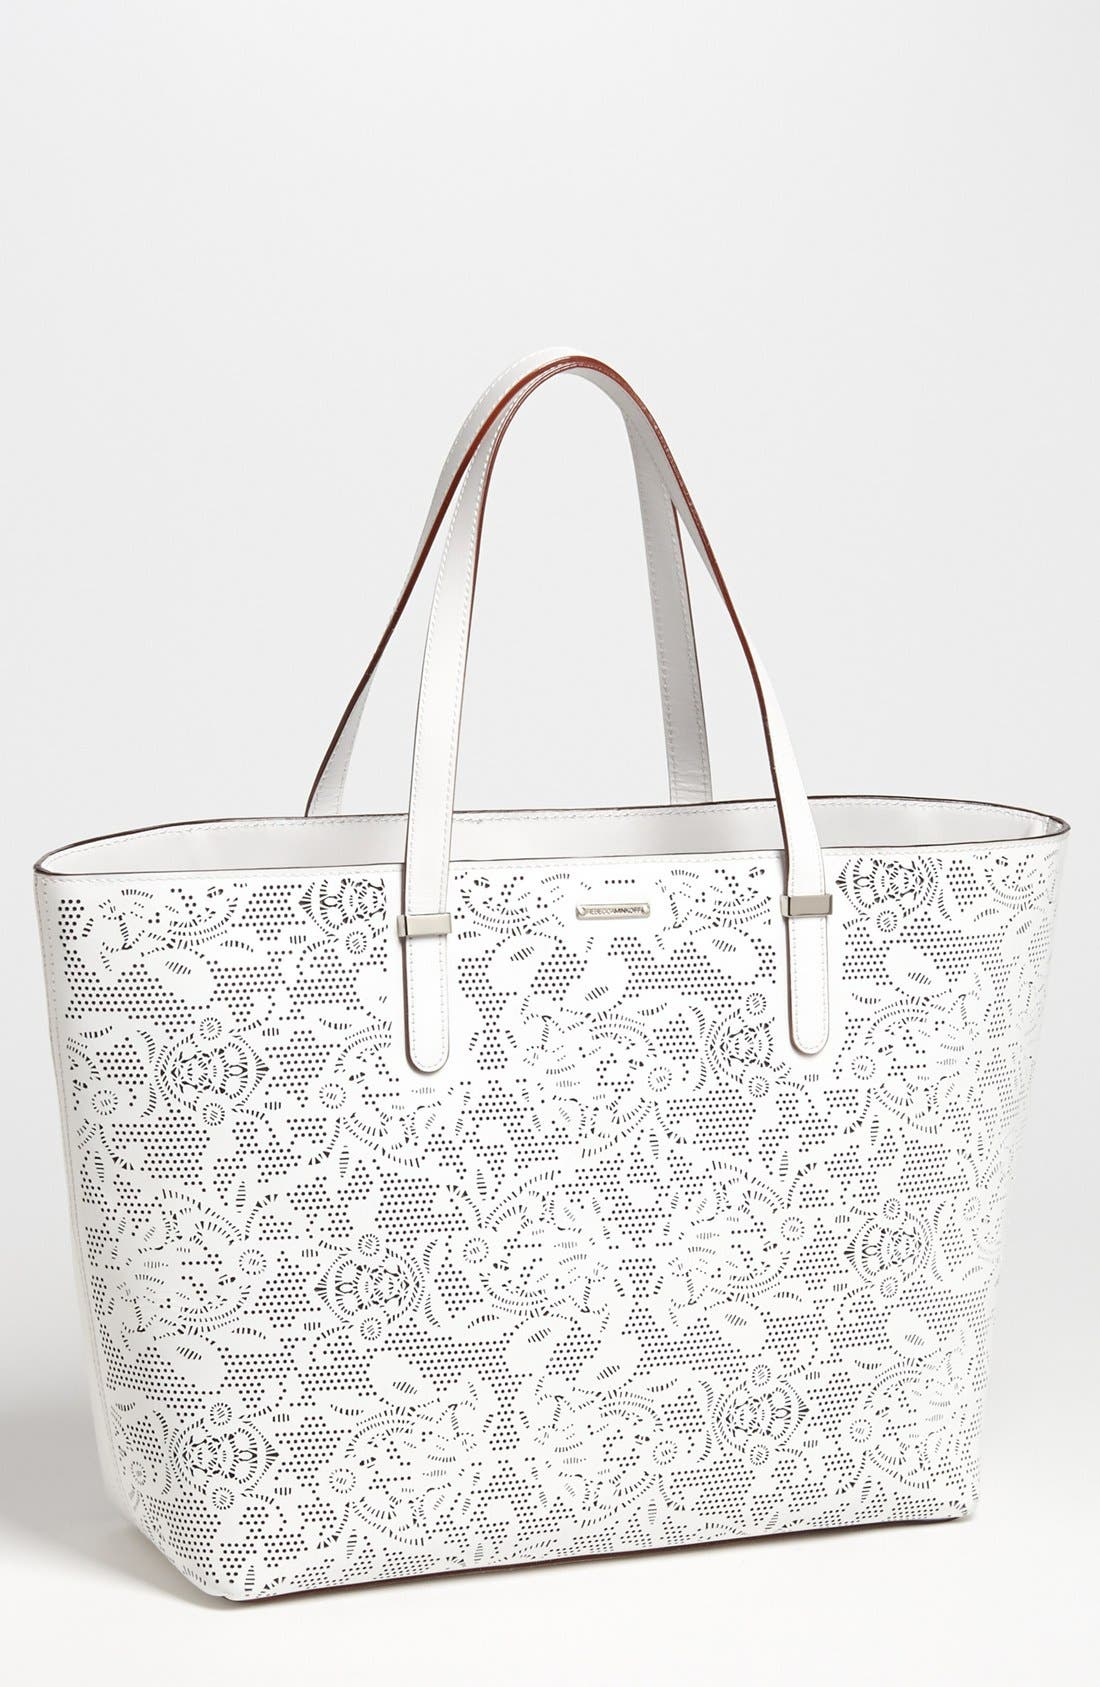 Main Image - Rebecca Minkoff 'Lasercut Perfection' Leather Tote